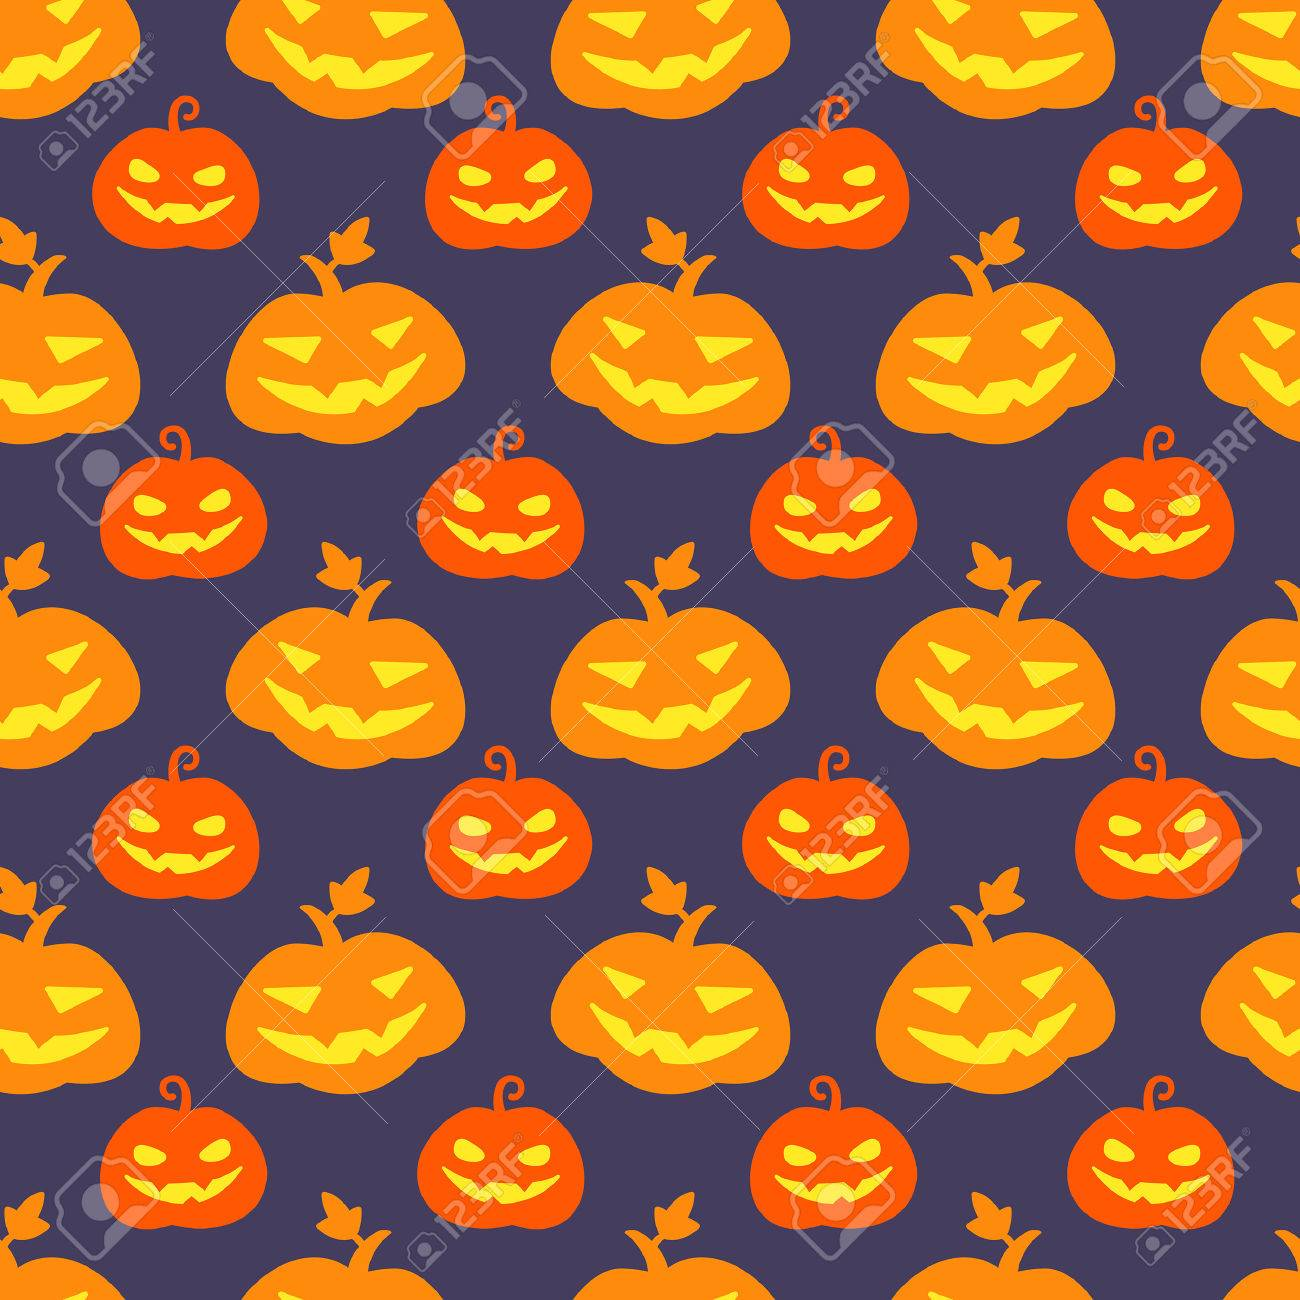 Halloween Pumpkin Seamless Vector Pattern Cute And Funny Jack Royalty Free Cliparts Vectors And Stock Illustration Image 62931568